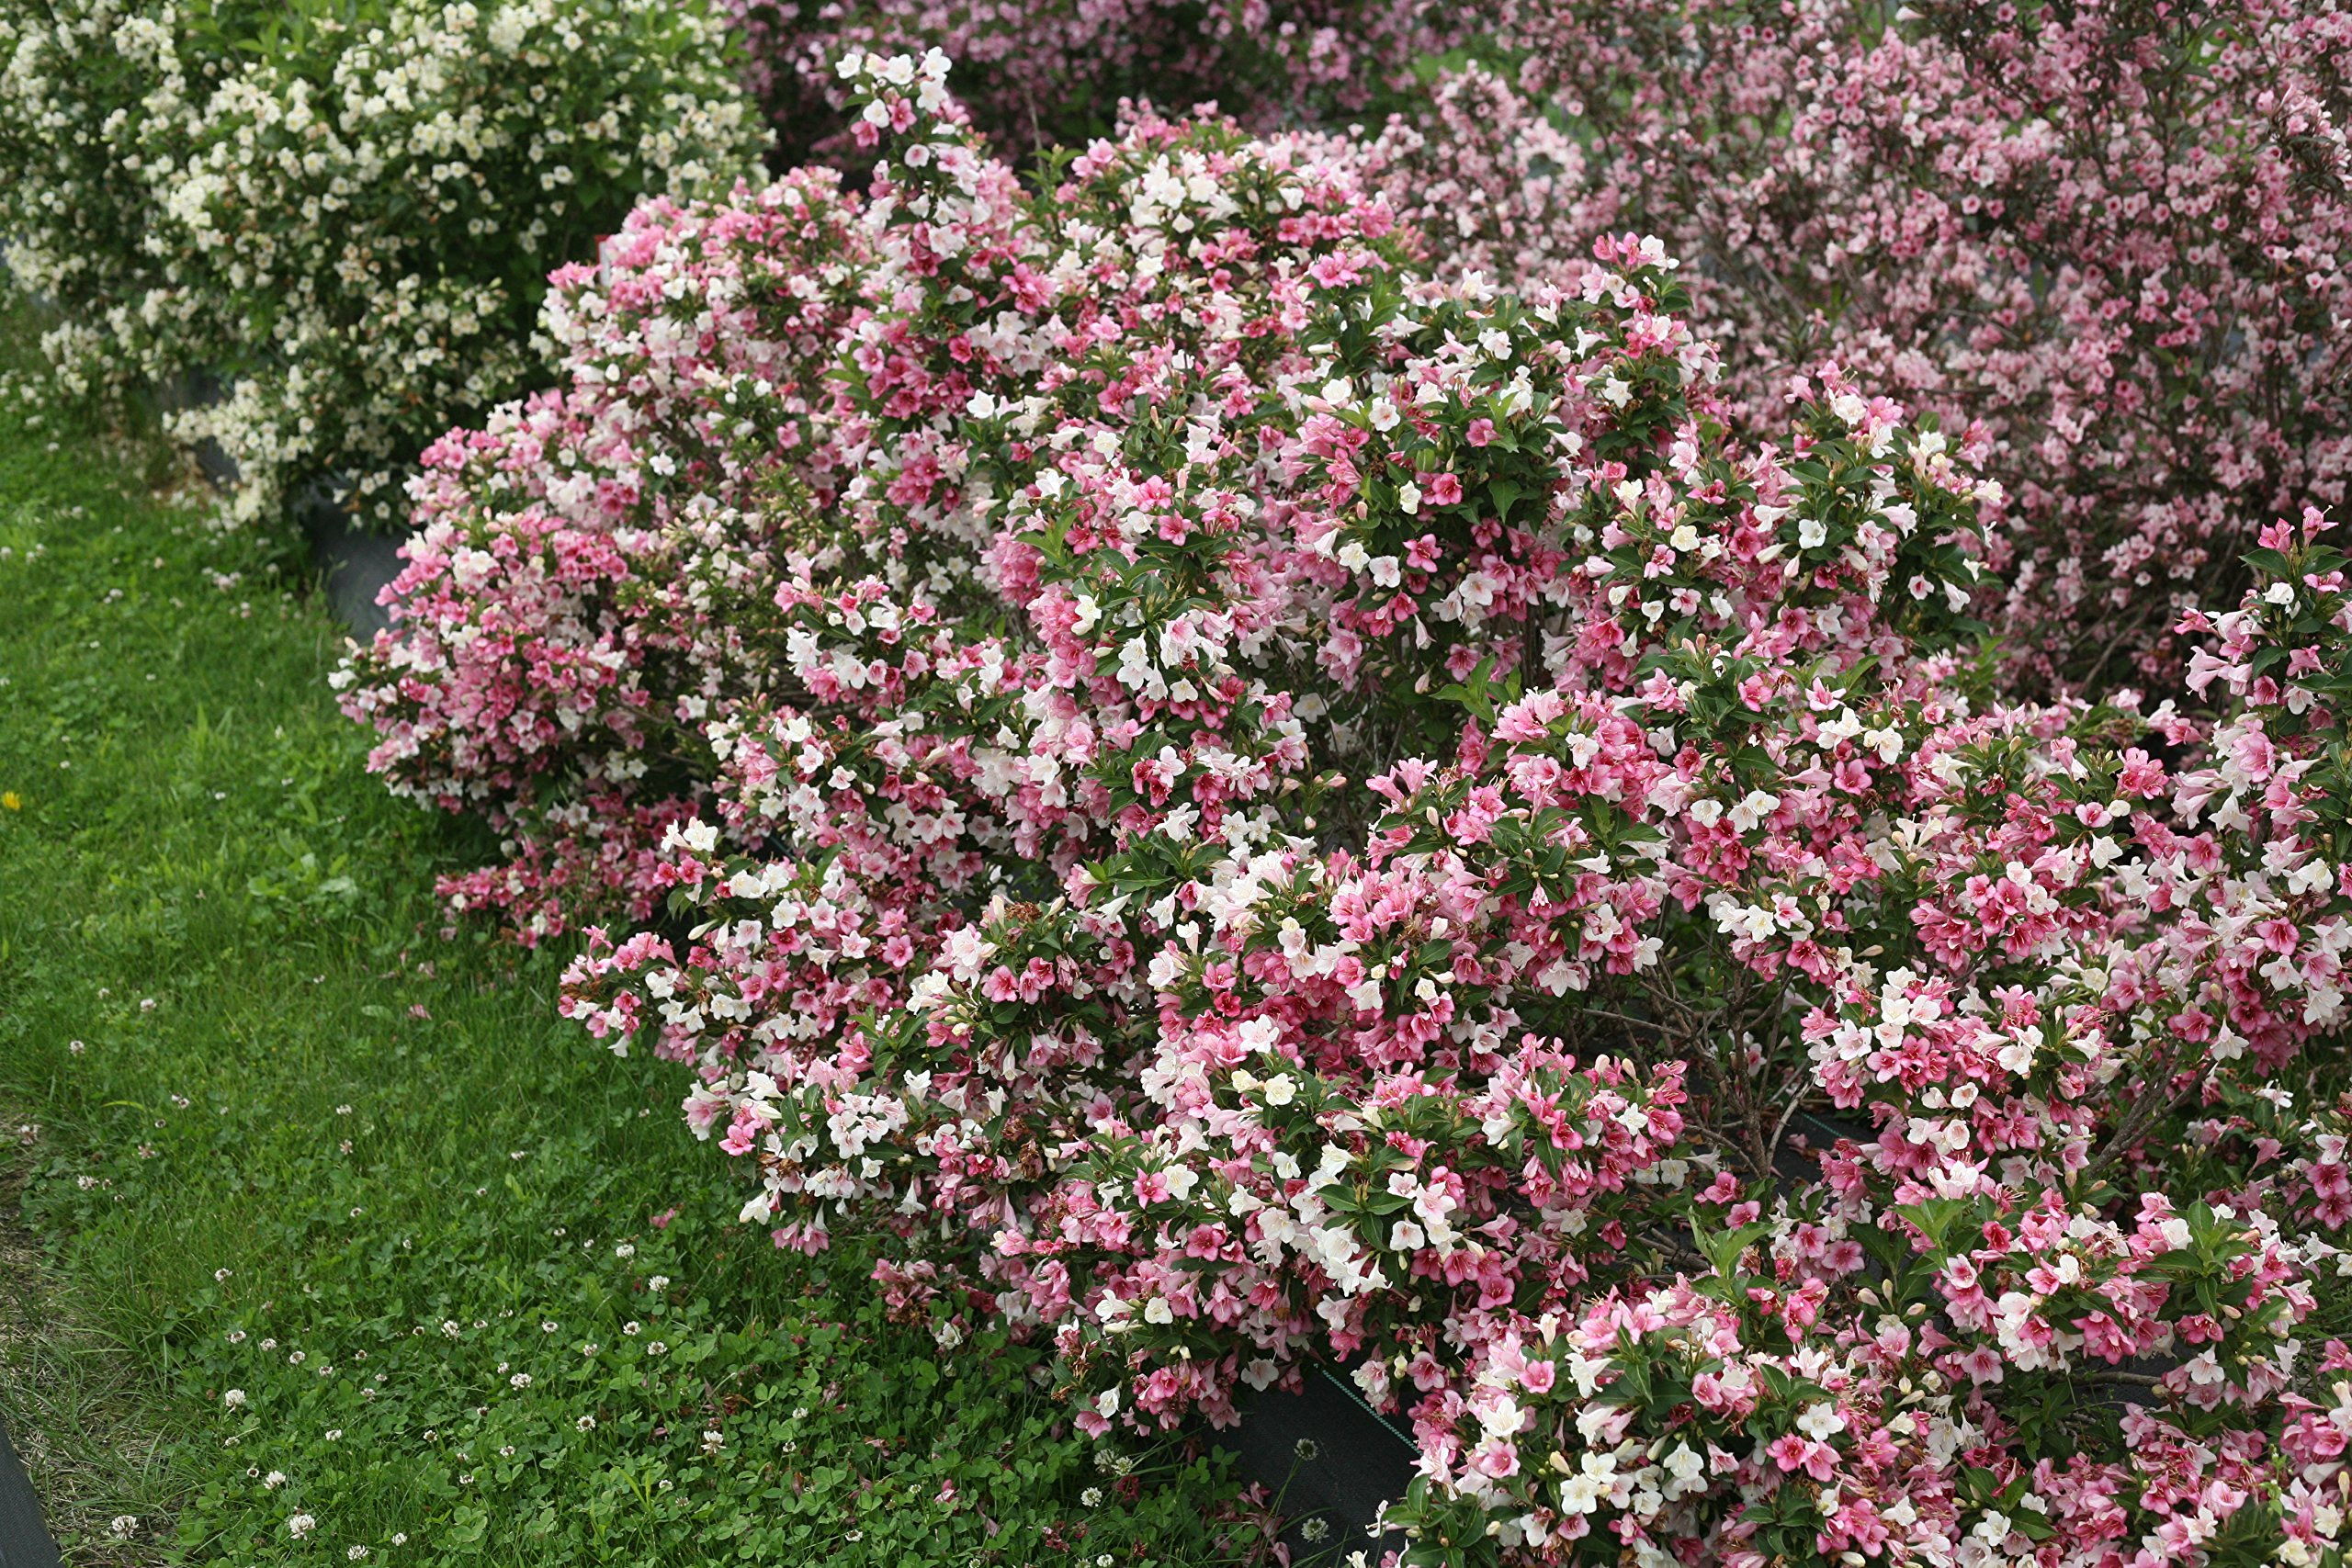 Czechmark Trilogy (Weigela) Live Shrub, White, Pink, and Red Flowers, 1 Gallon by Proven Winners (Image #7)